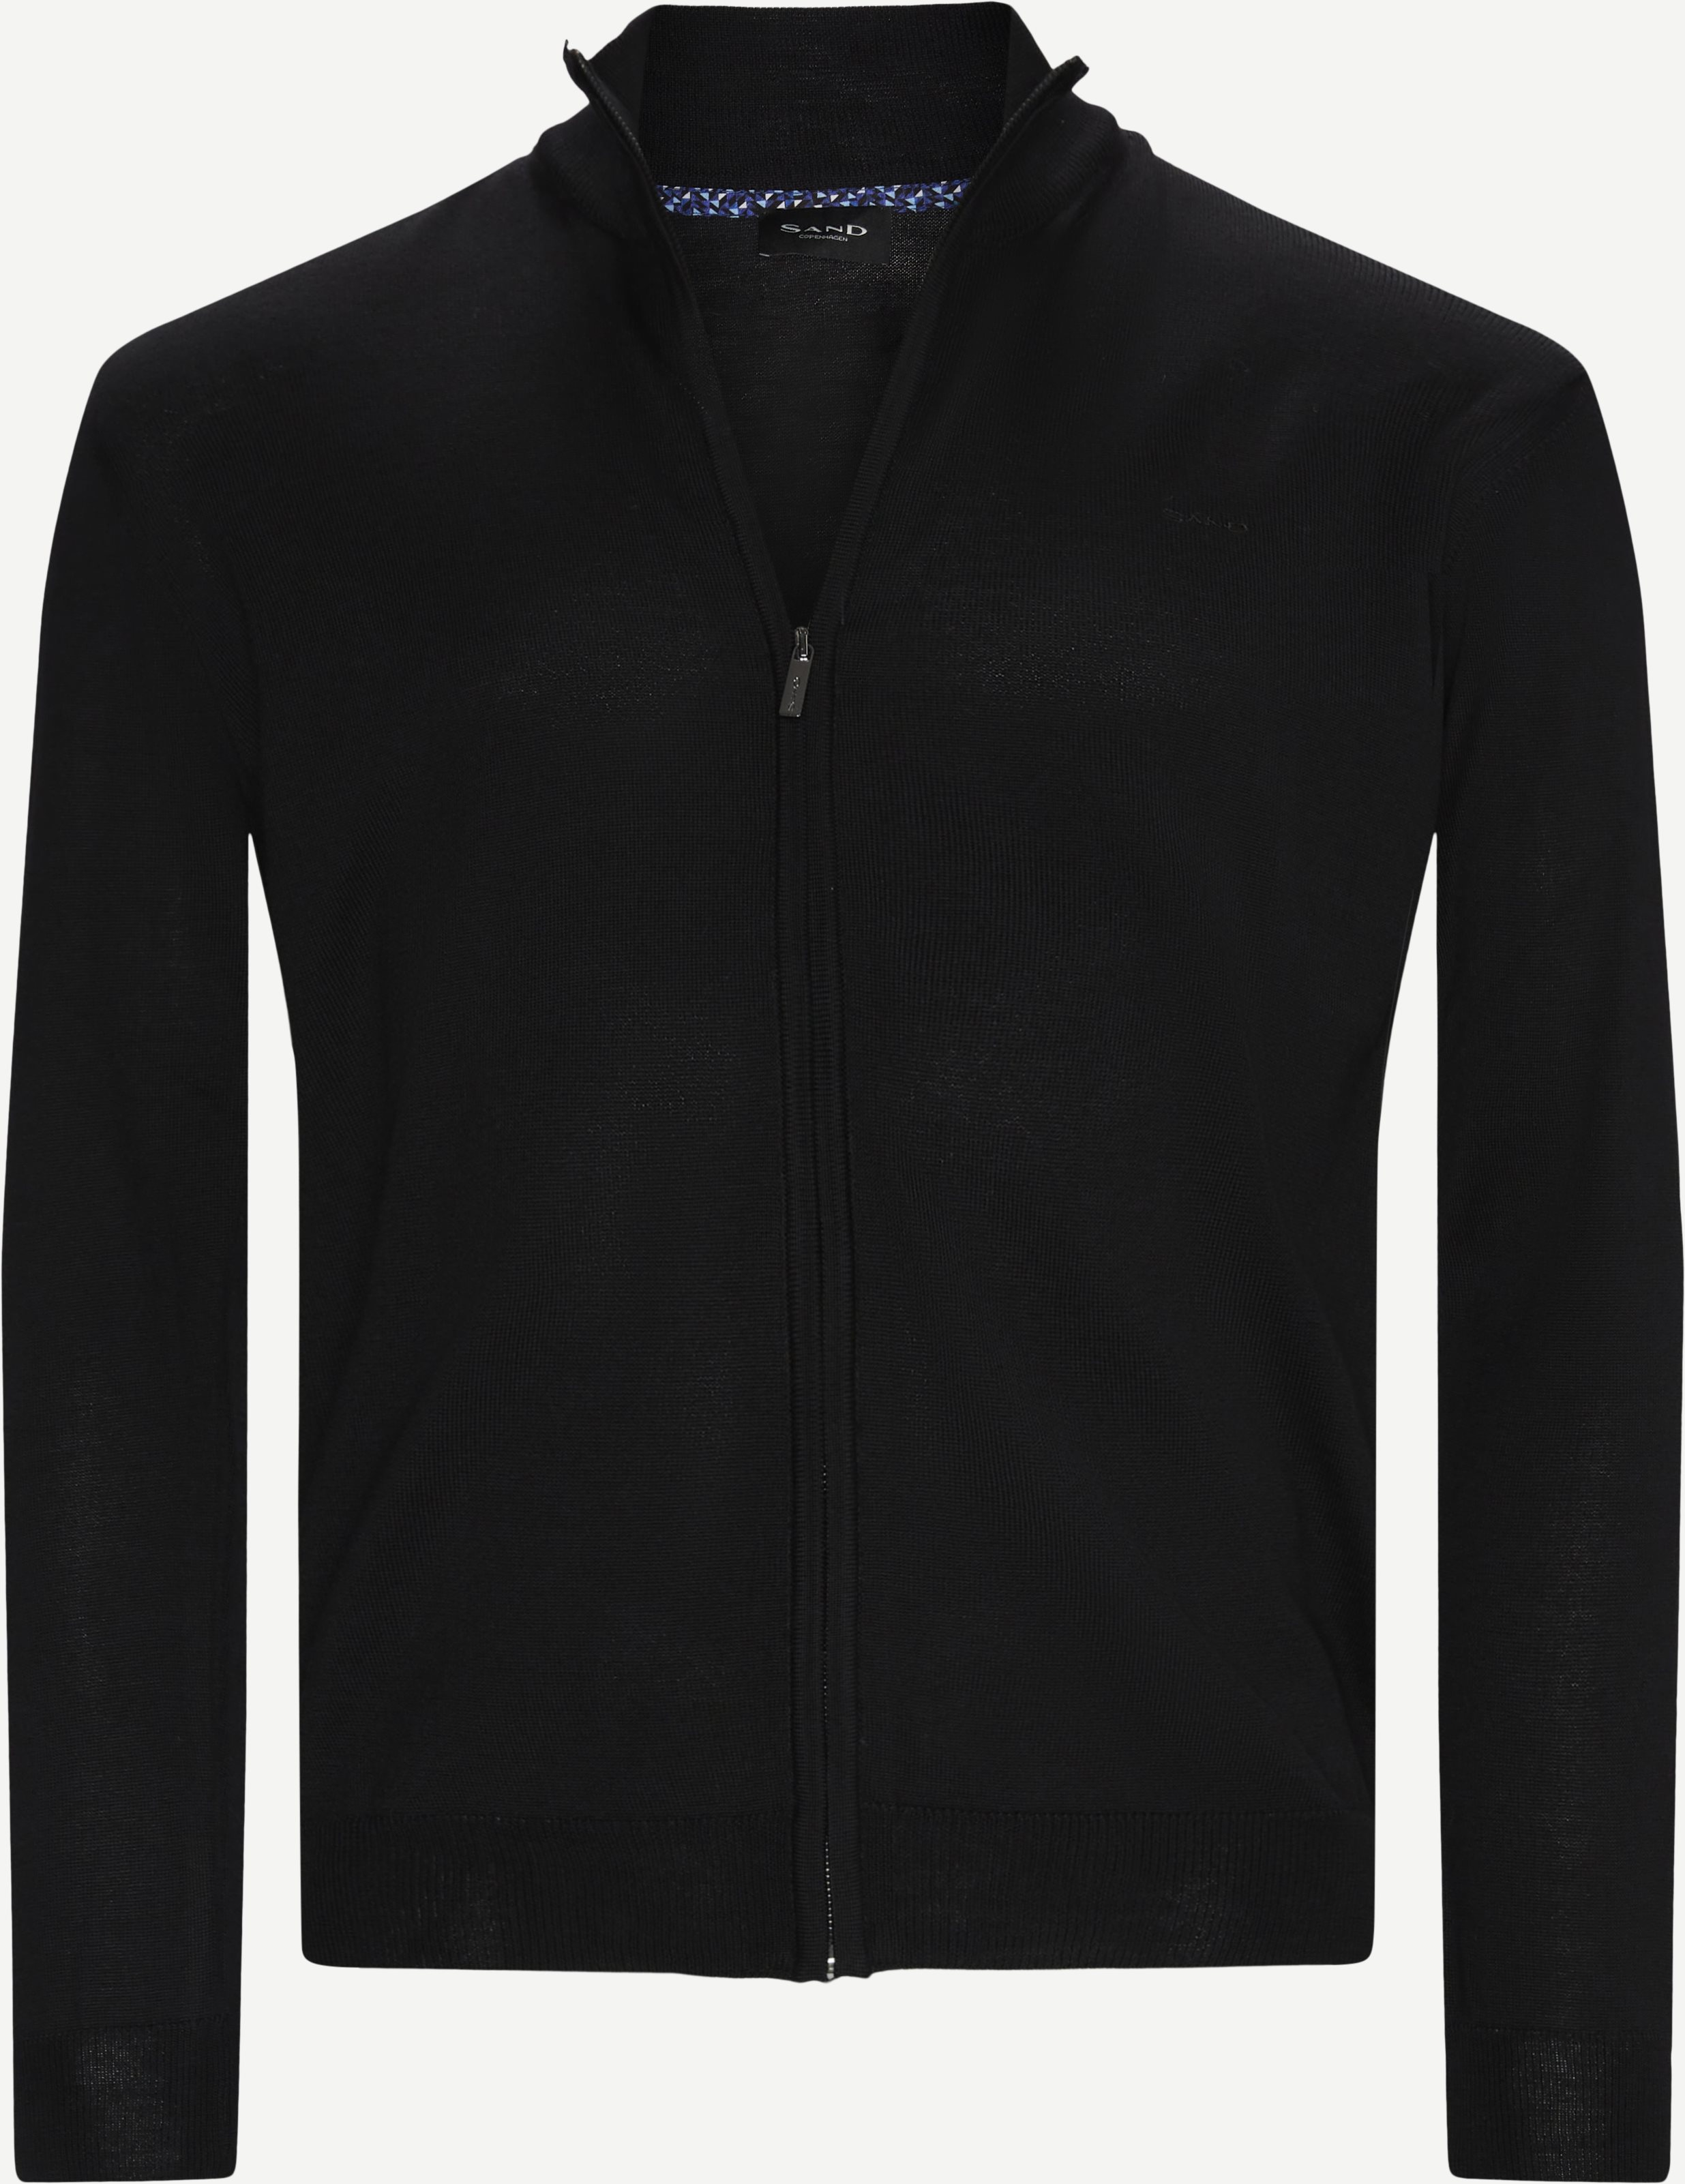 Merino Embr. Cardigan - Knitwear - Regular - Black